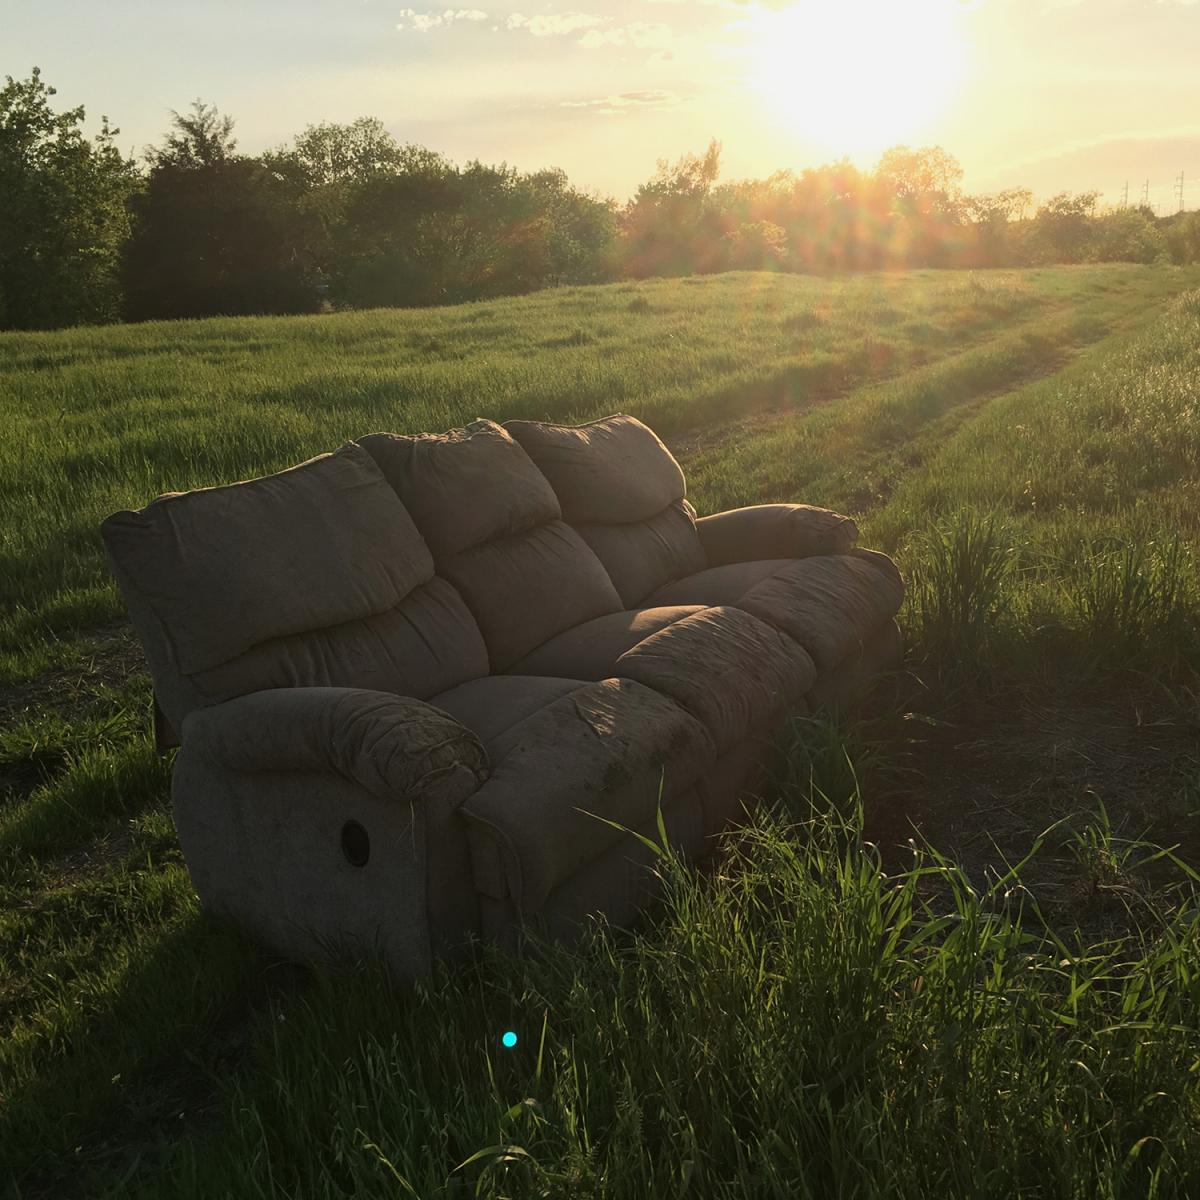 A sofa in a meadow